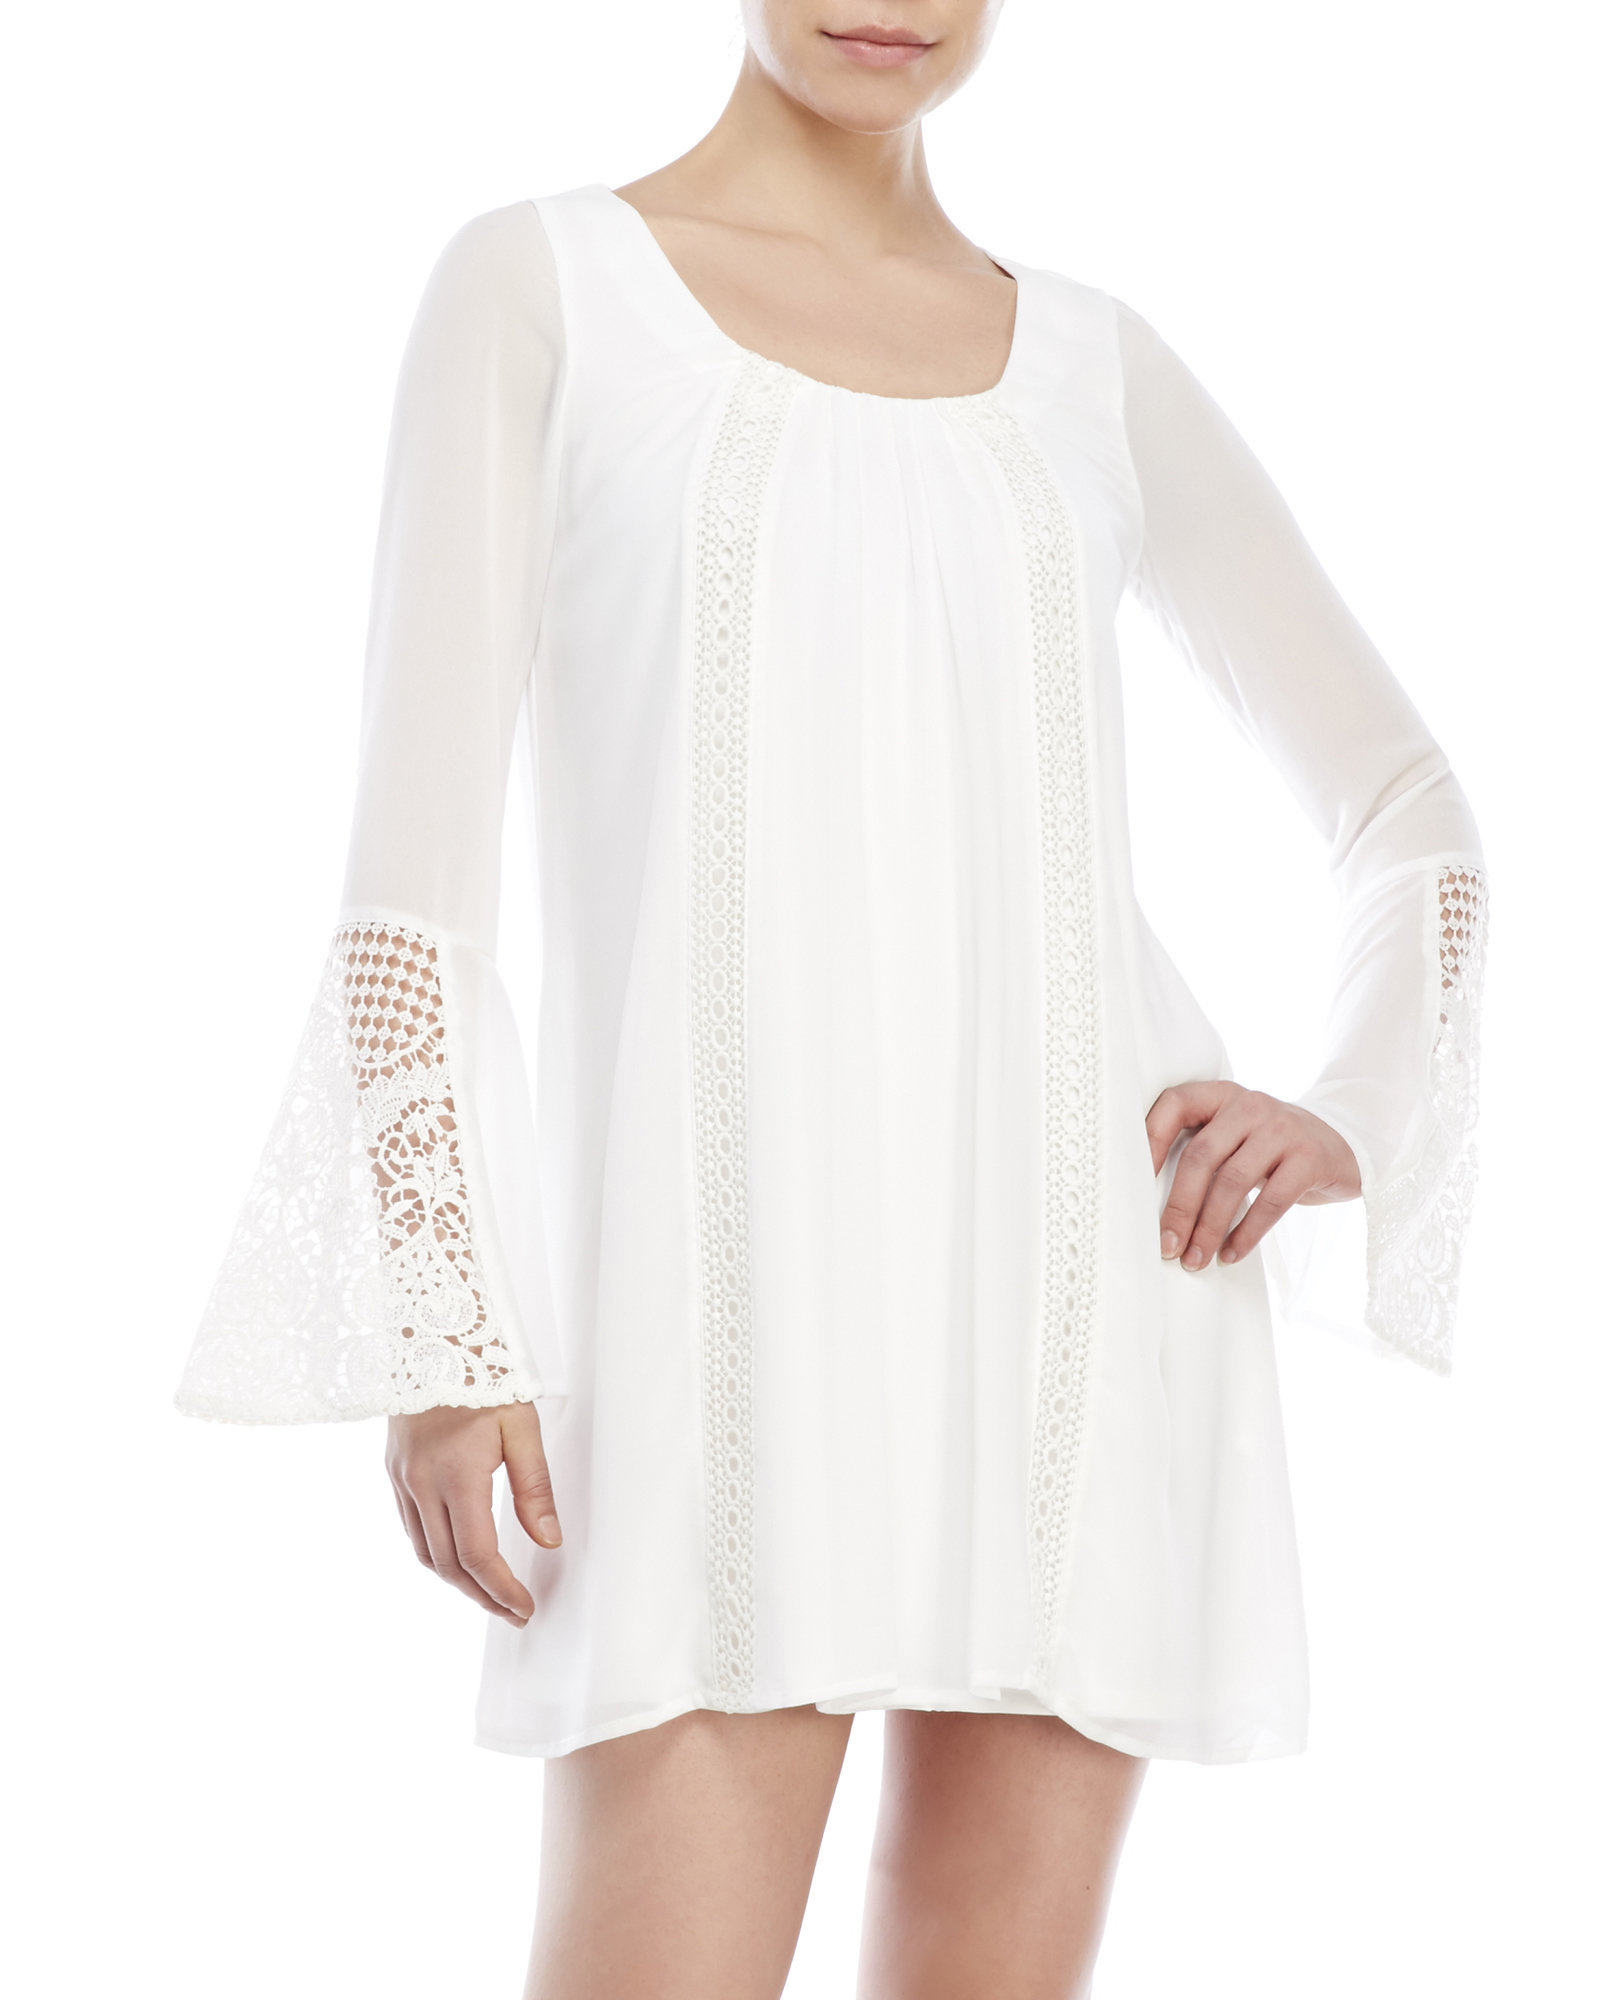 6f86eb964 Sequin Hearts Long Sleeve Crochet-Inset Dress in White - Lyst